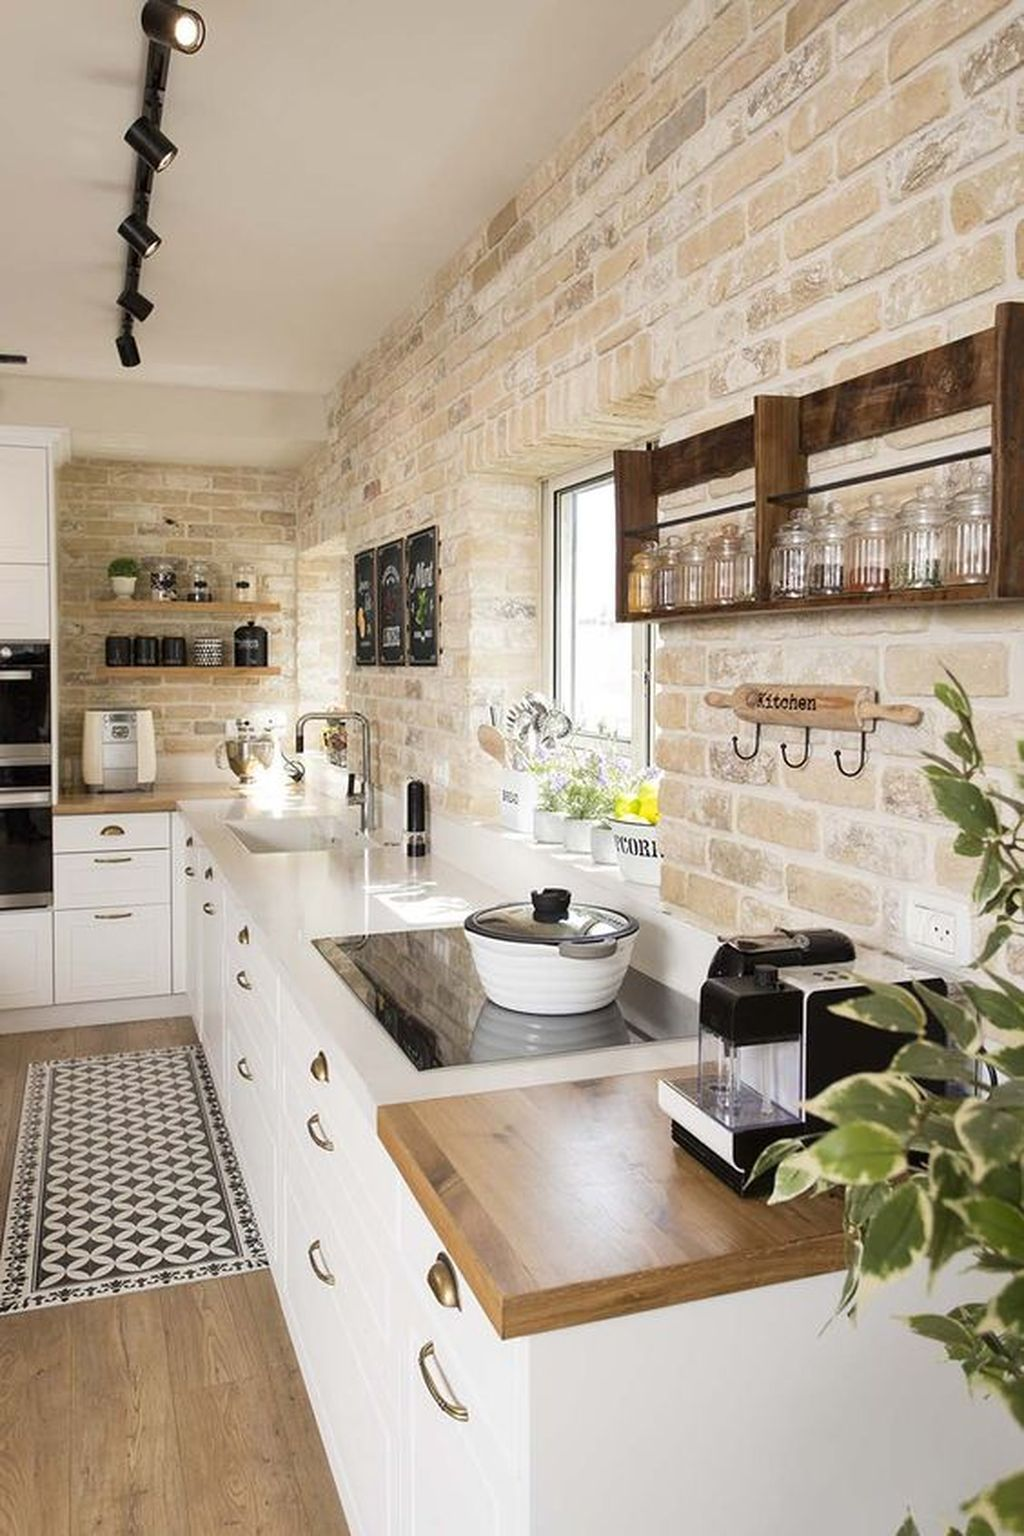 40 popular modern farmhouse kitchen backsplash ideas interior design kitchen modern farmhouse on farmhouse kitchen backsplash id=58223